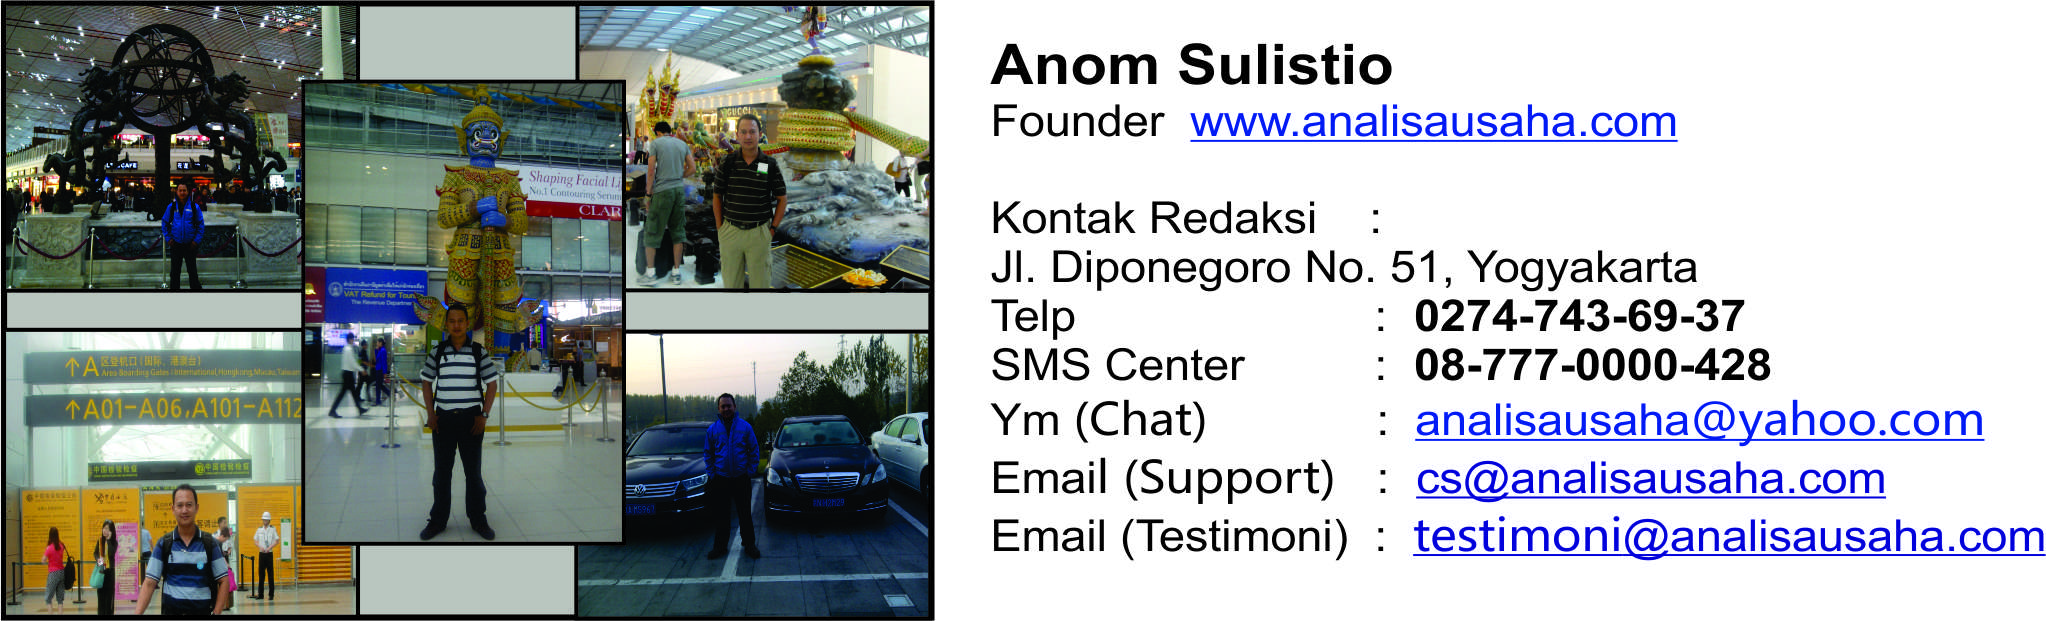 Profile Anom 3 Analisa Usaha Rental Warnet